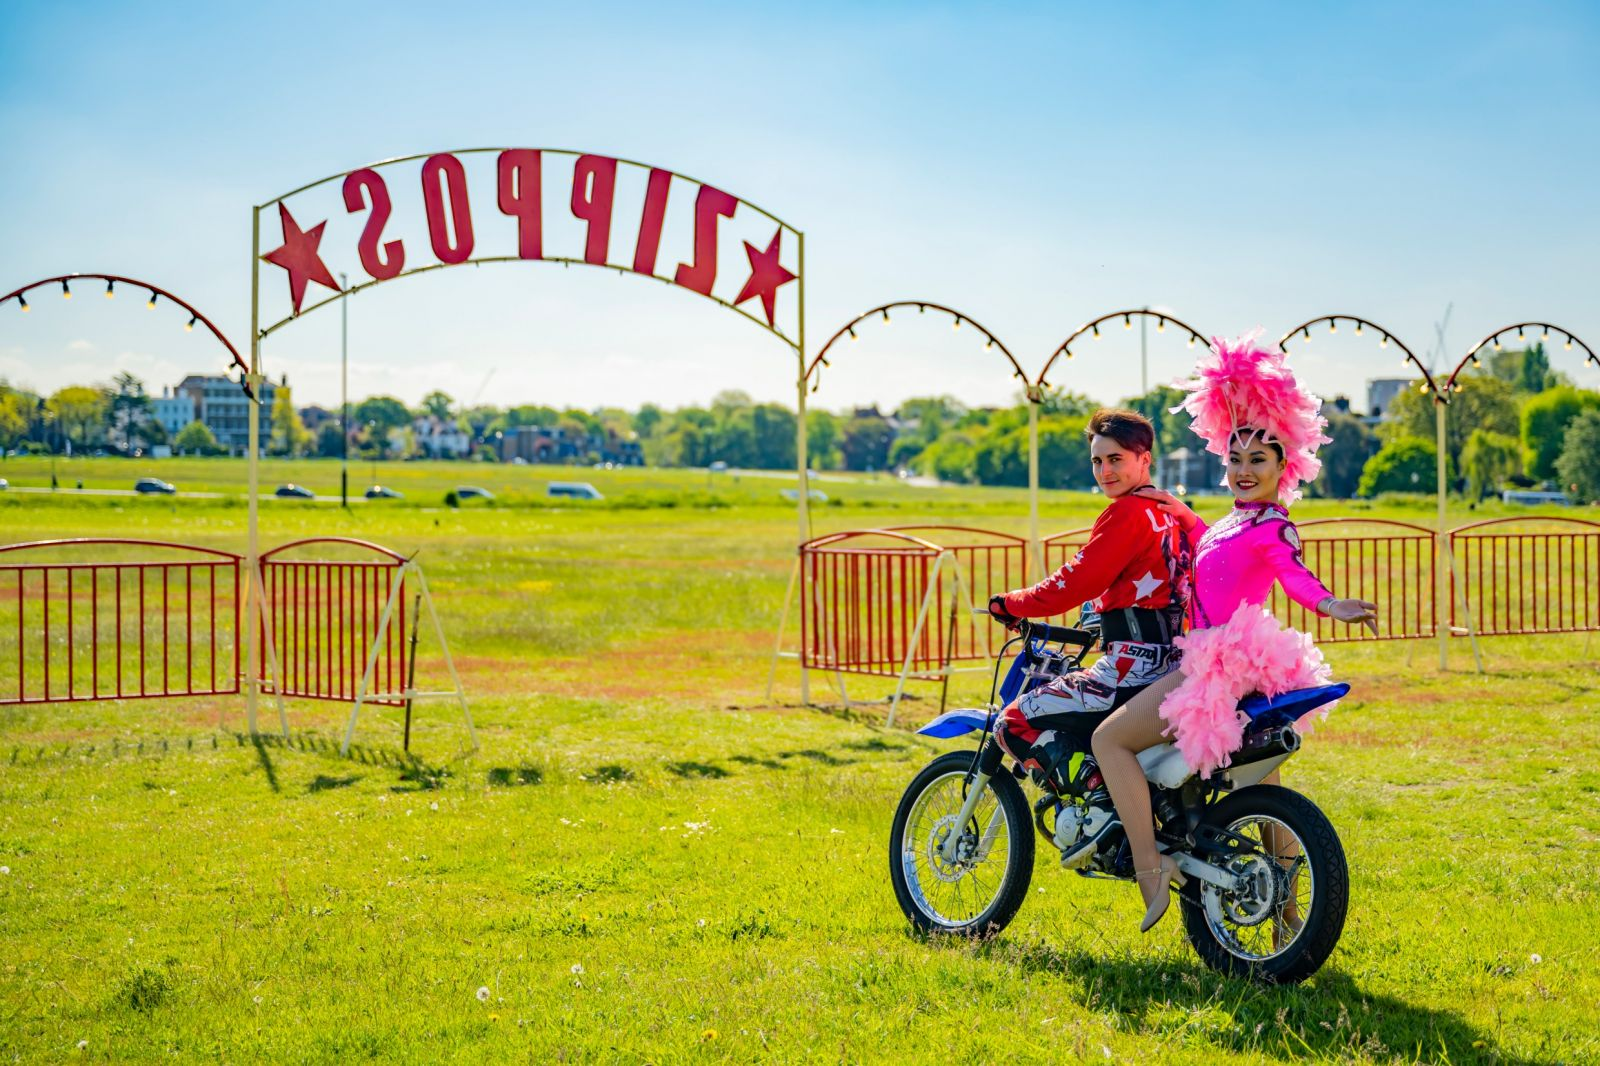 Showgirl and motorbike. Photographer credit: Piet-Hein Out